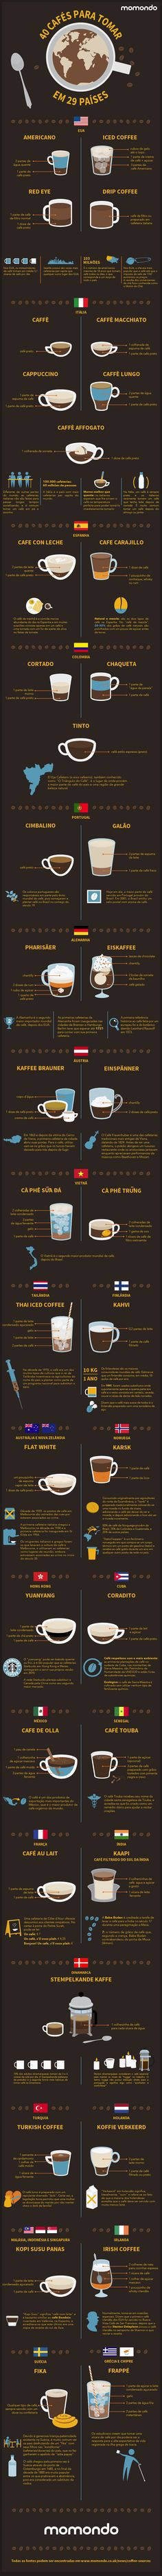 Coffee Tips That Can Work For You! - Useful Coffee Tips and Guide I Love Coffee, Coffee Break, My Coffee, Coffee Cafe, Coffee Drinks, Coffee Shop, Coffee Lovers, Coffee Barista, Coffee Recipes